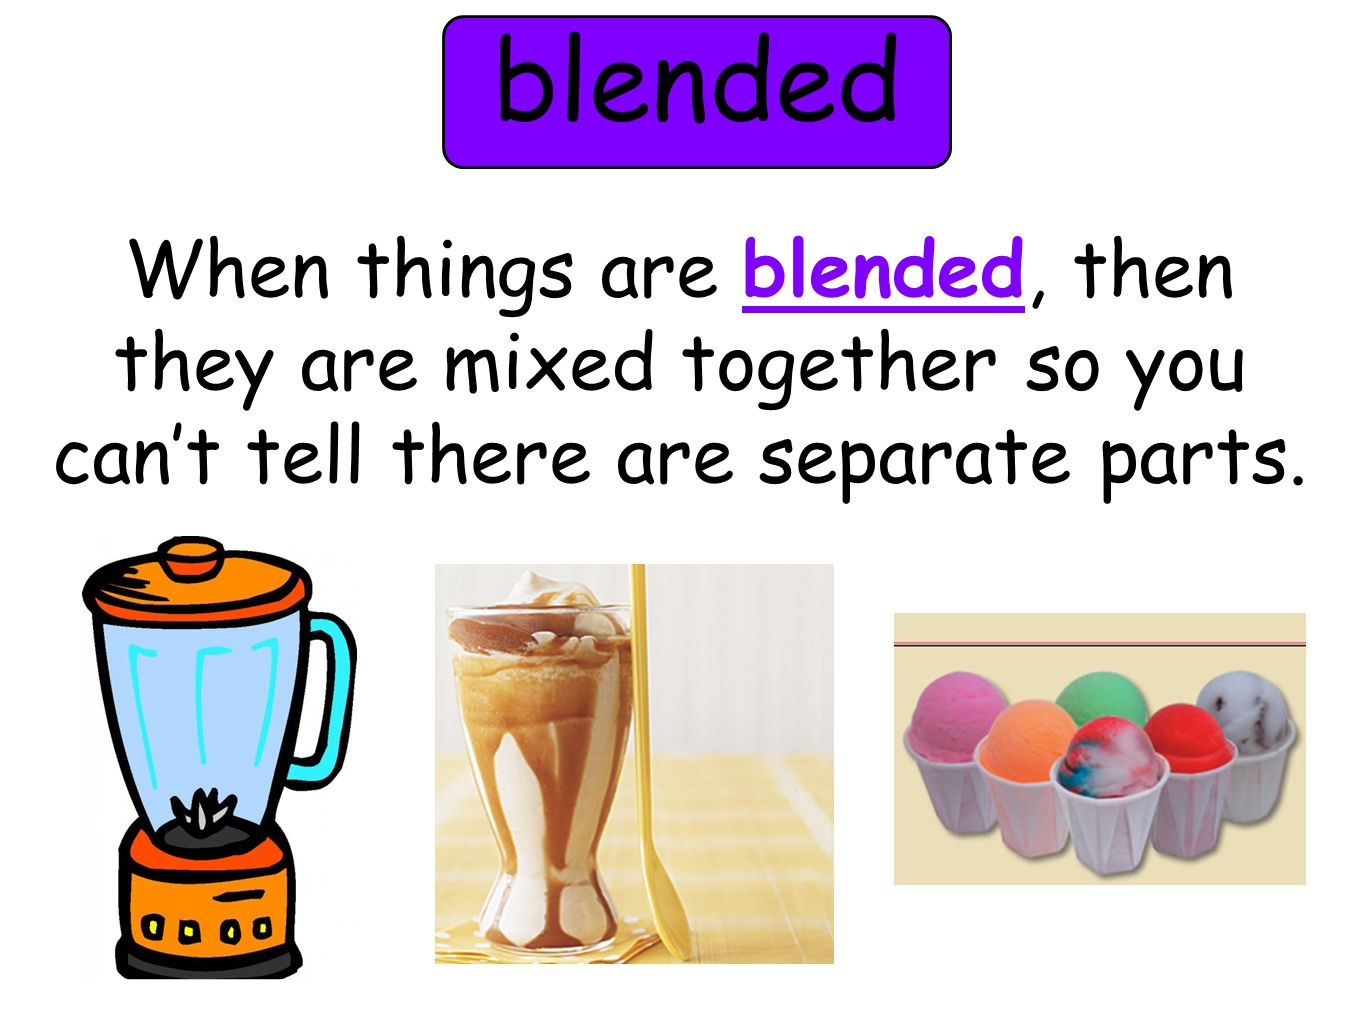 blended When things are blended, then they are mixed together so you can't tell there are separate parts.